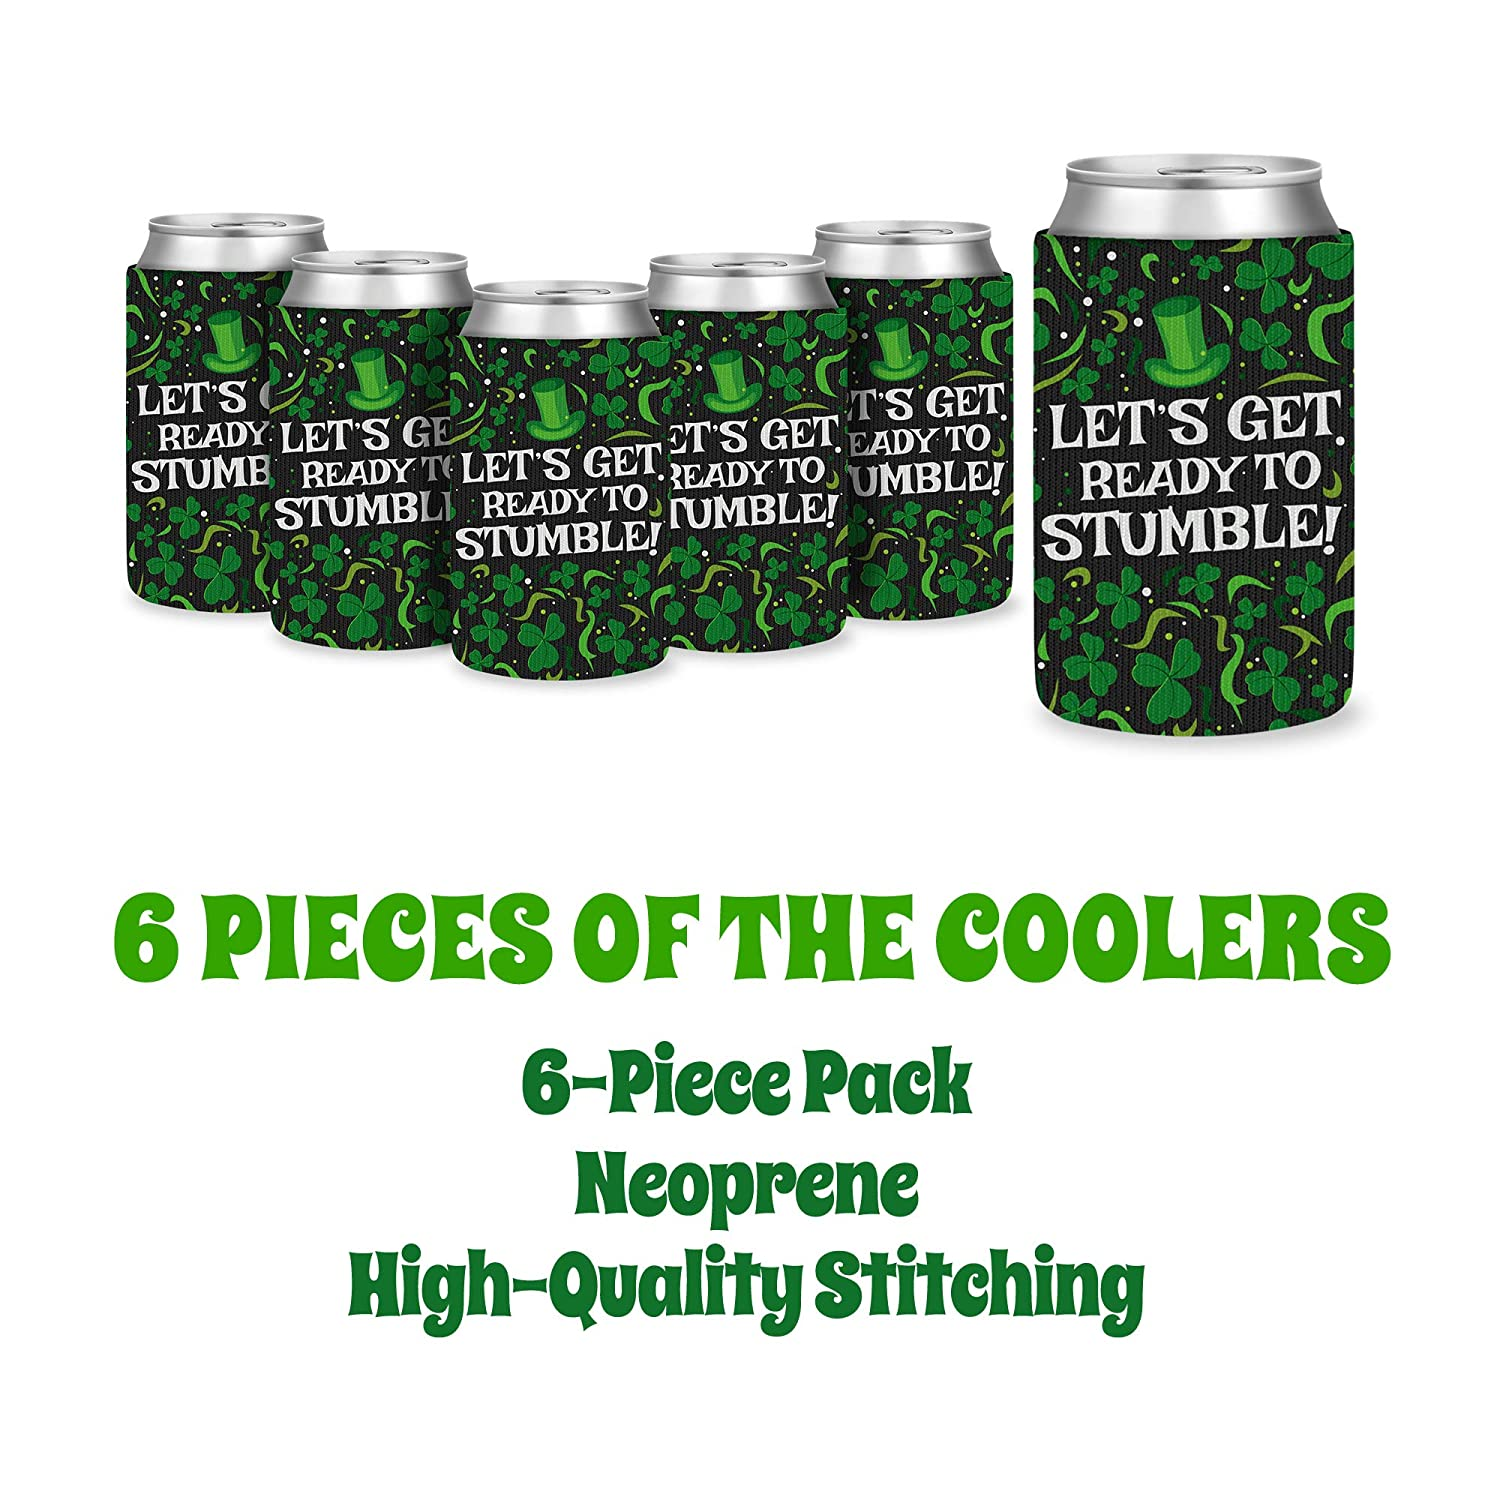 9dbbdf374 St. Patrick's Day Can Cover - Insulated Cooler - With Clovers, Swirlies,  Dots Designs - Keep Canned Drinks Cool For A Longer Time - Stay Refreshed &  Get ...